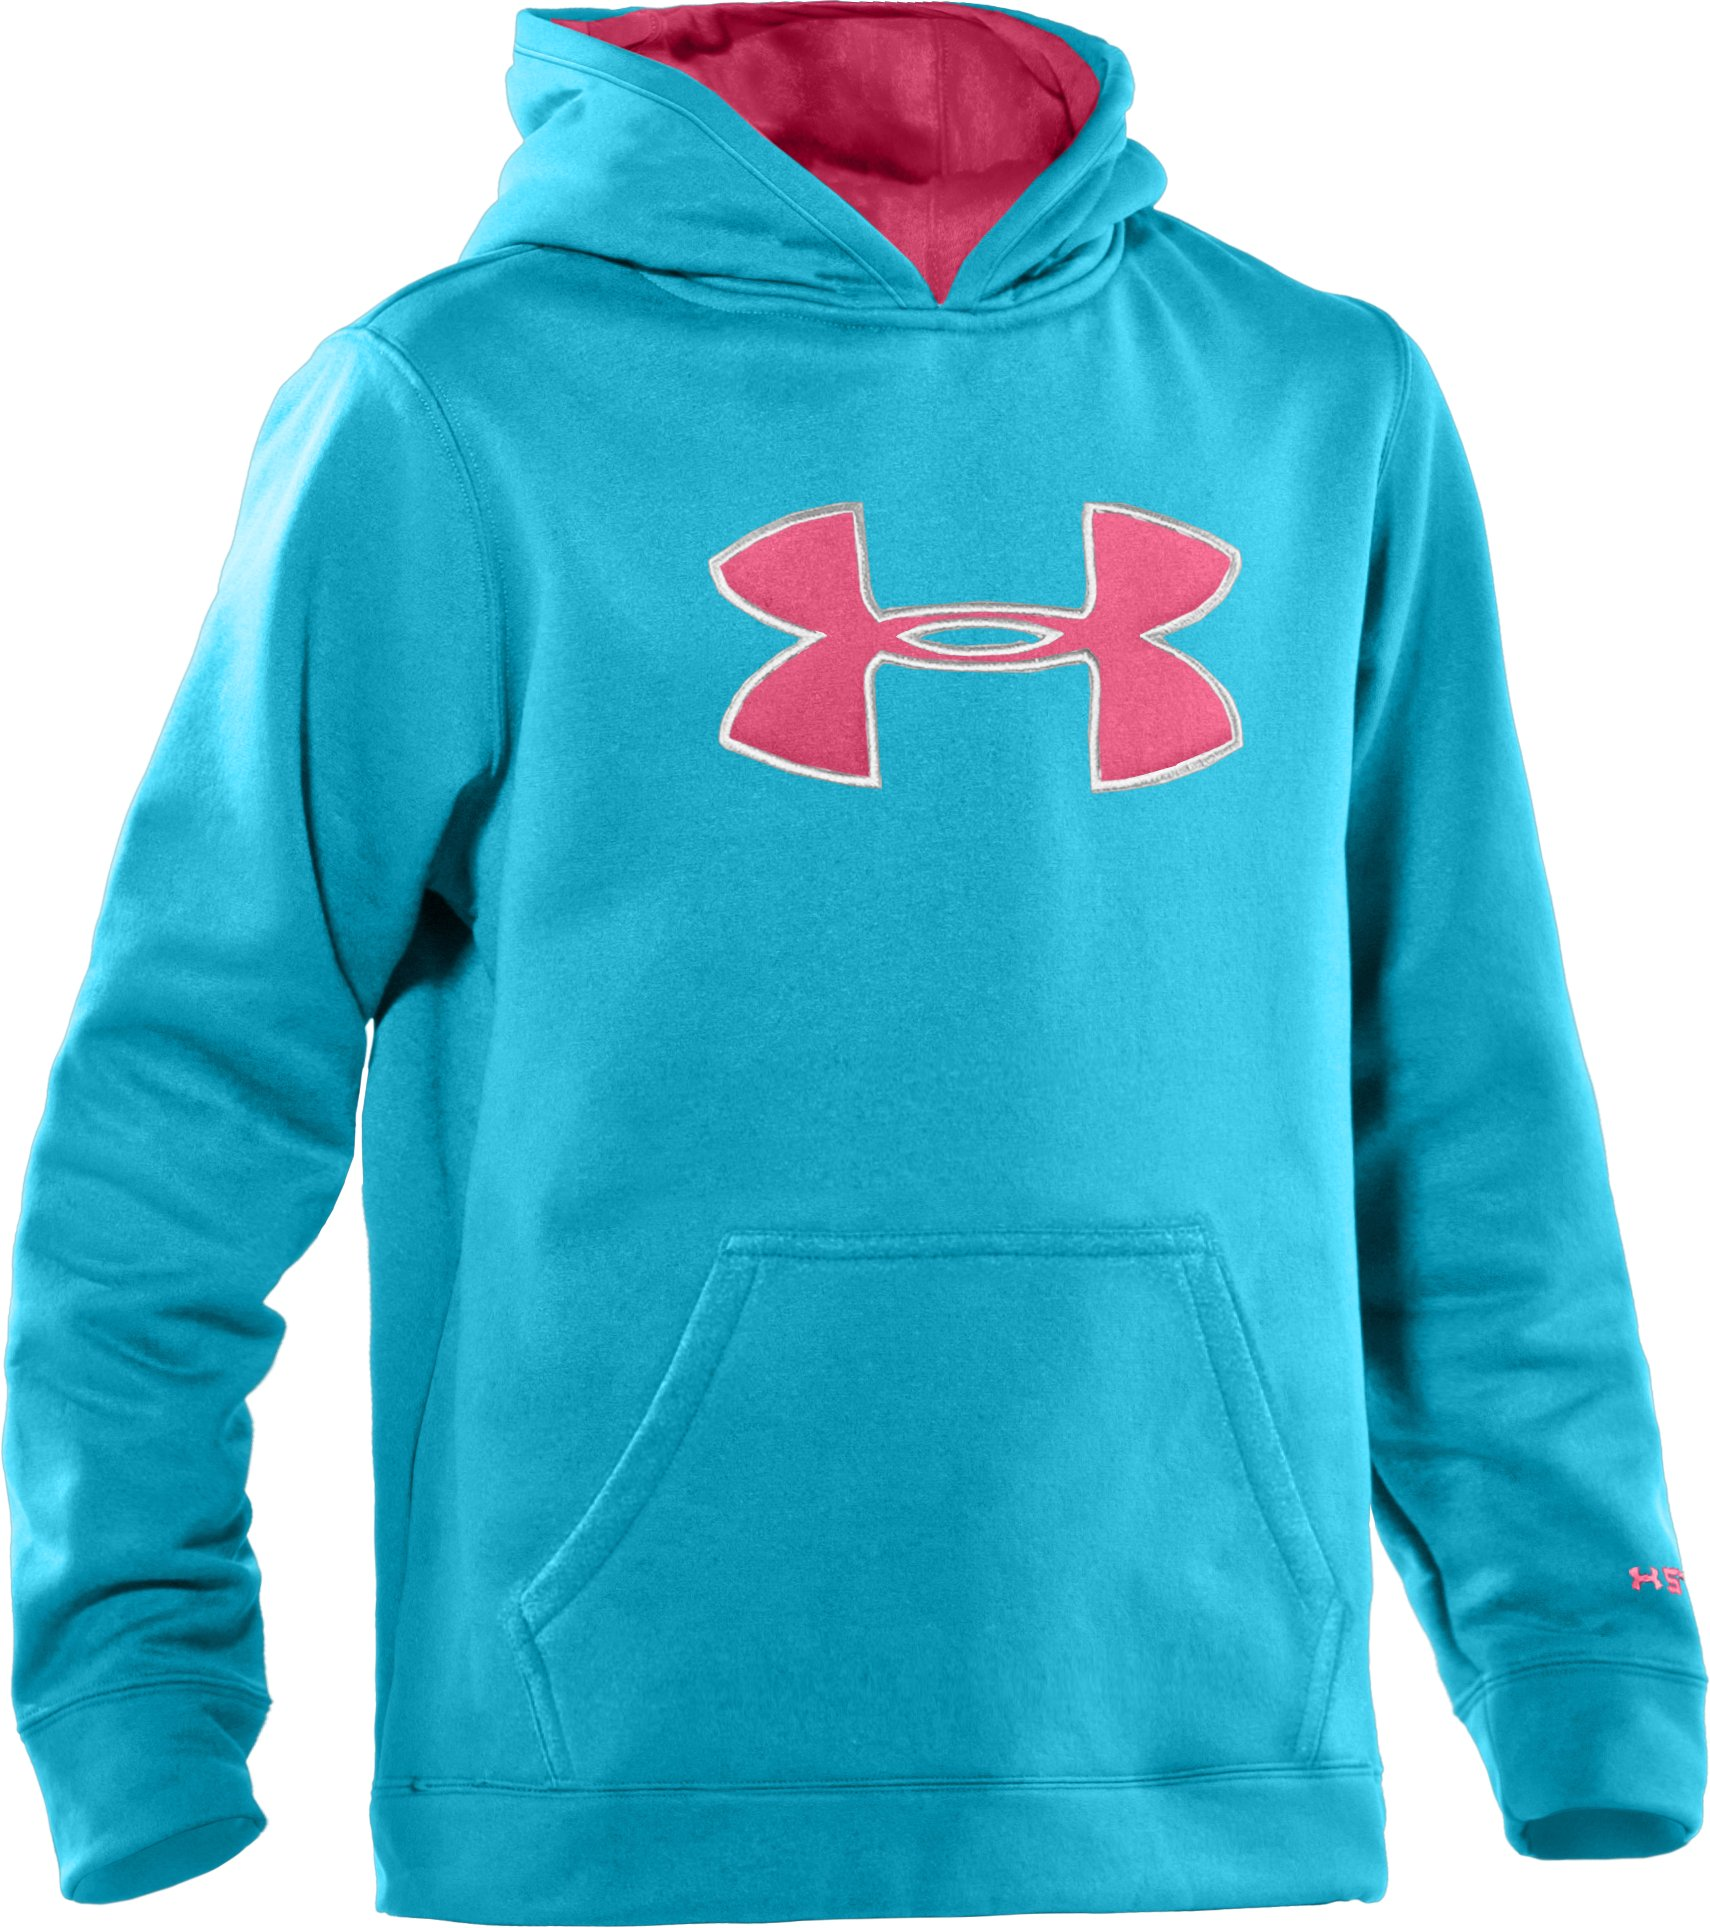 Girls' Armour® Fleece Storm Big Logo Hoodie, Break, zoomed image